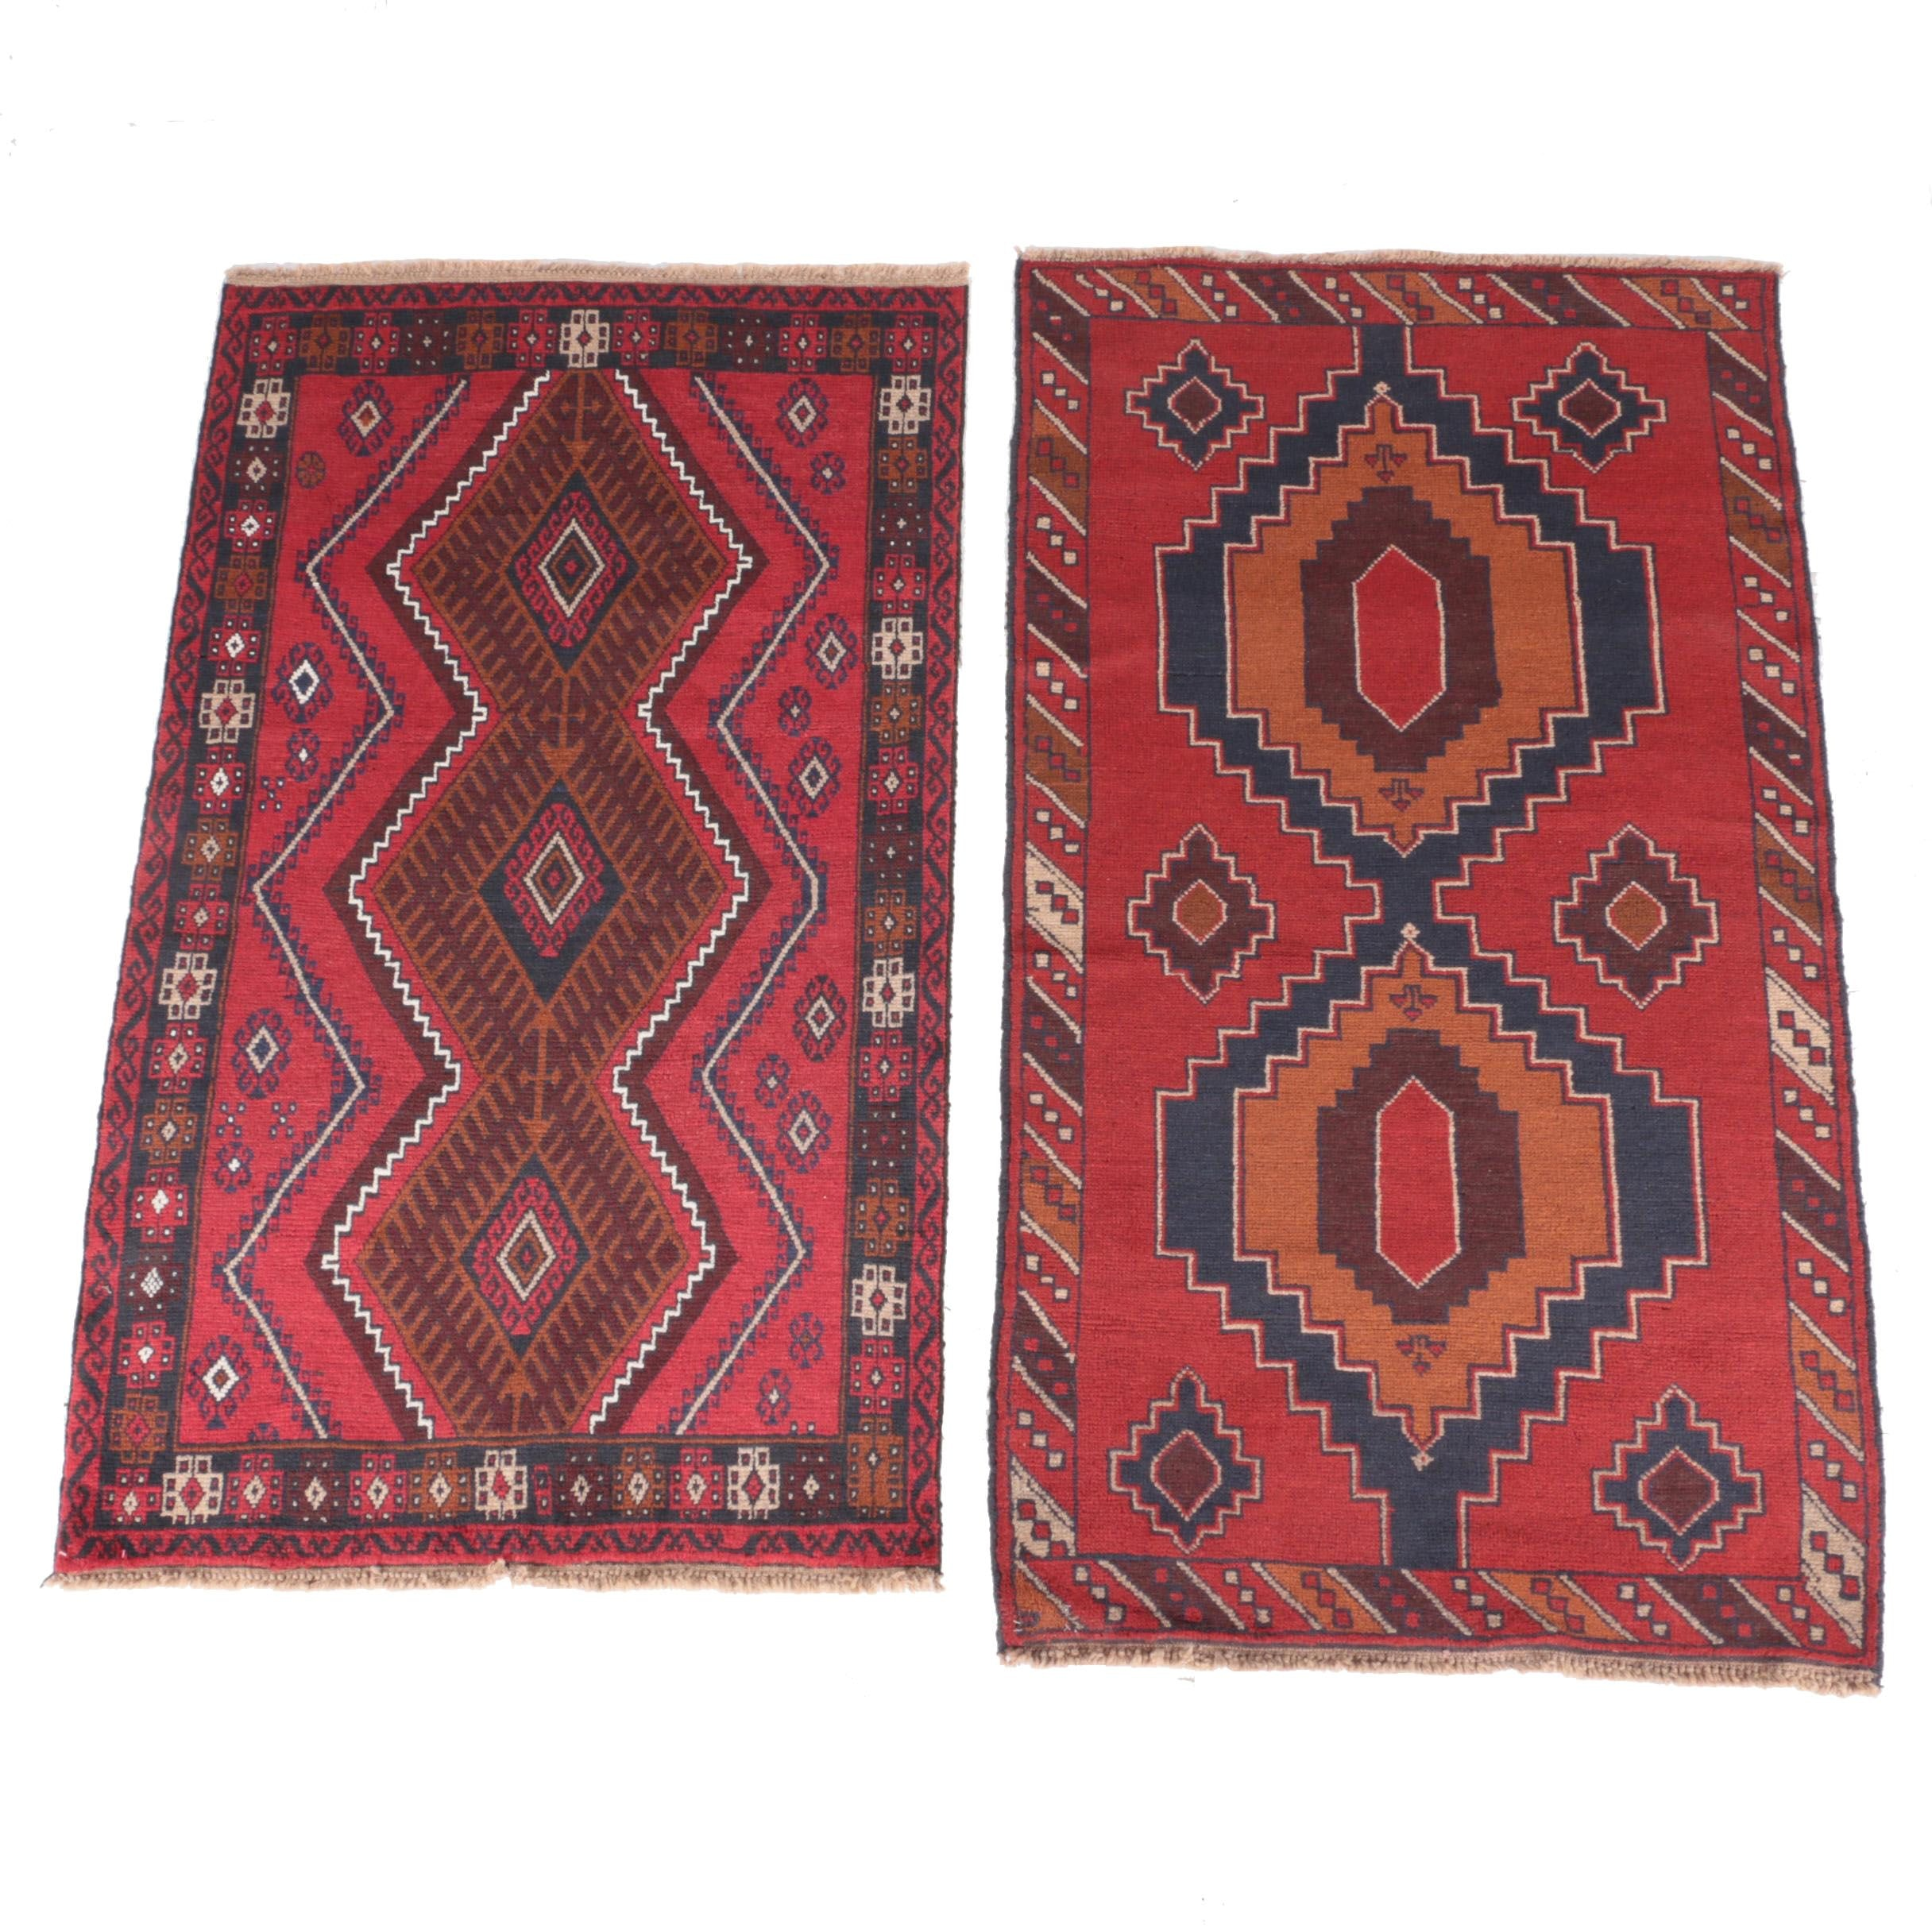 Pair of Hand-Knotted Baluchi Wool Area Rugs